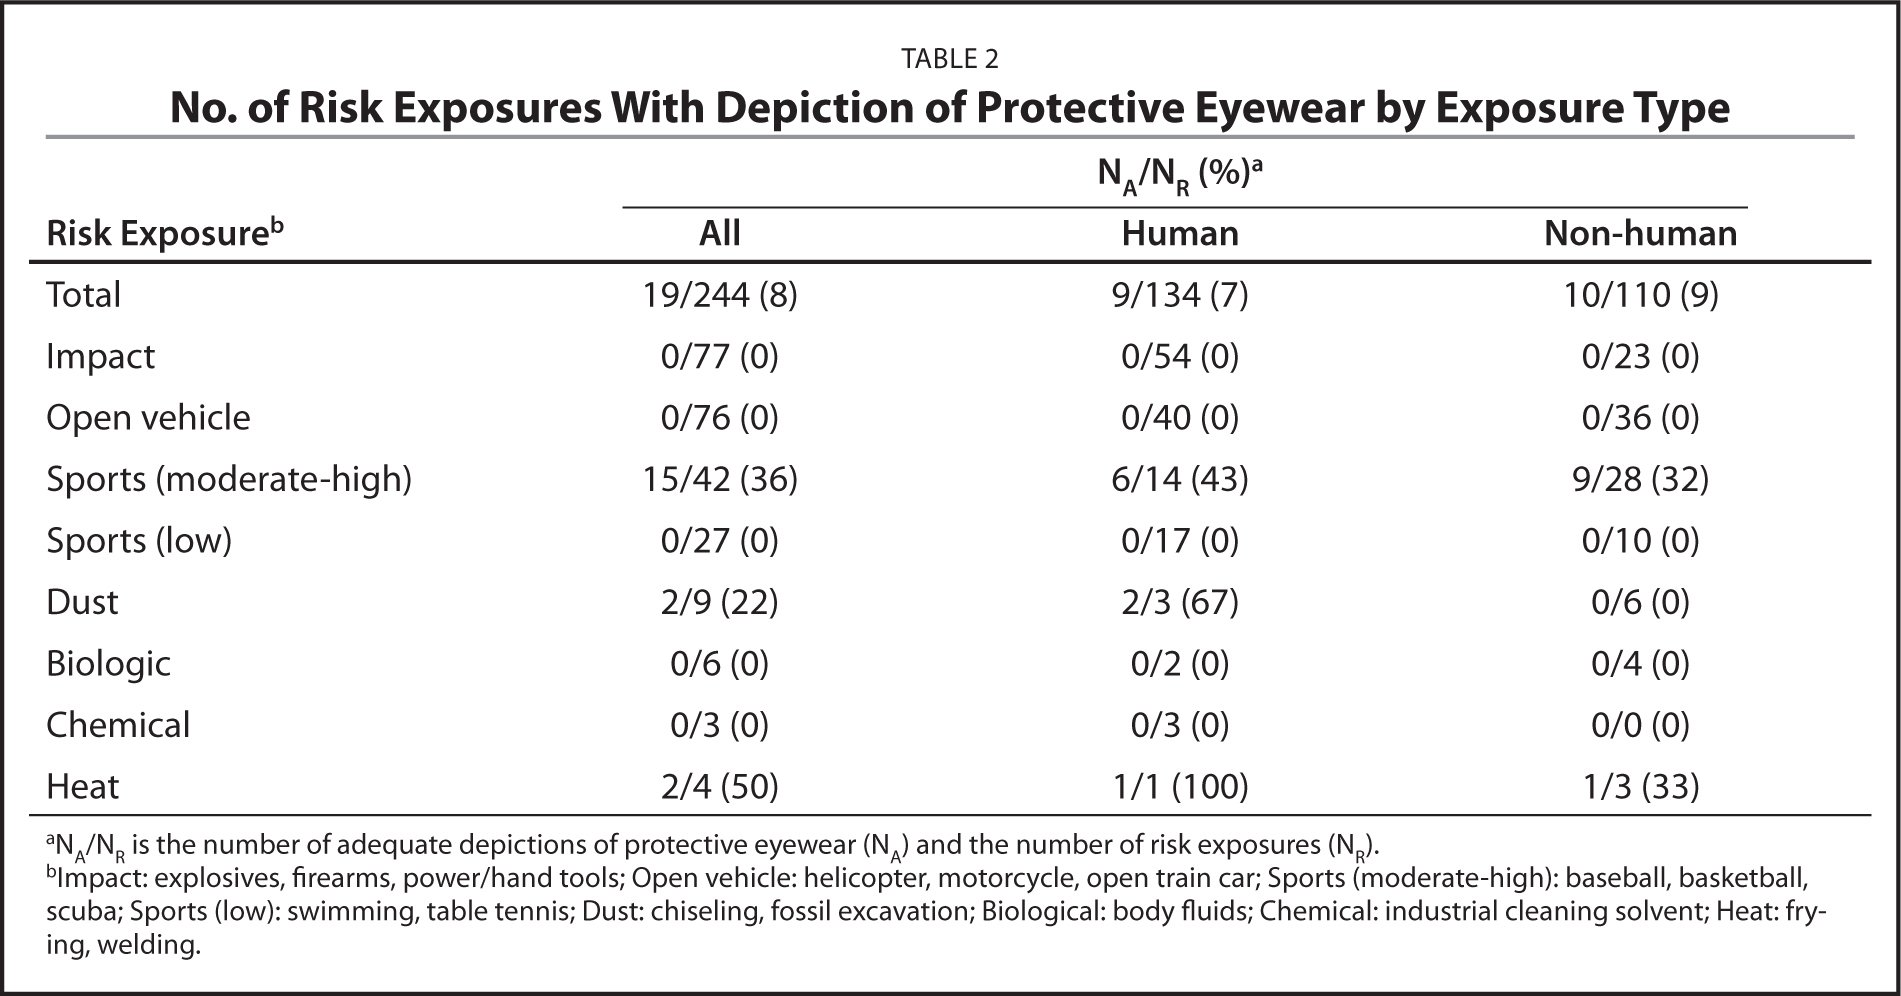 No. of Risk Exposures With Depiction of Protective Eyewear by Exposure Type